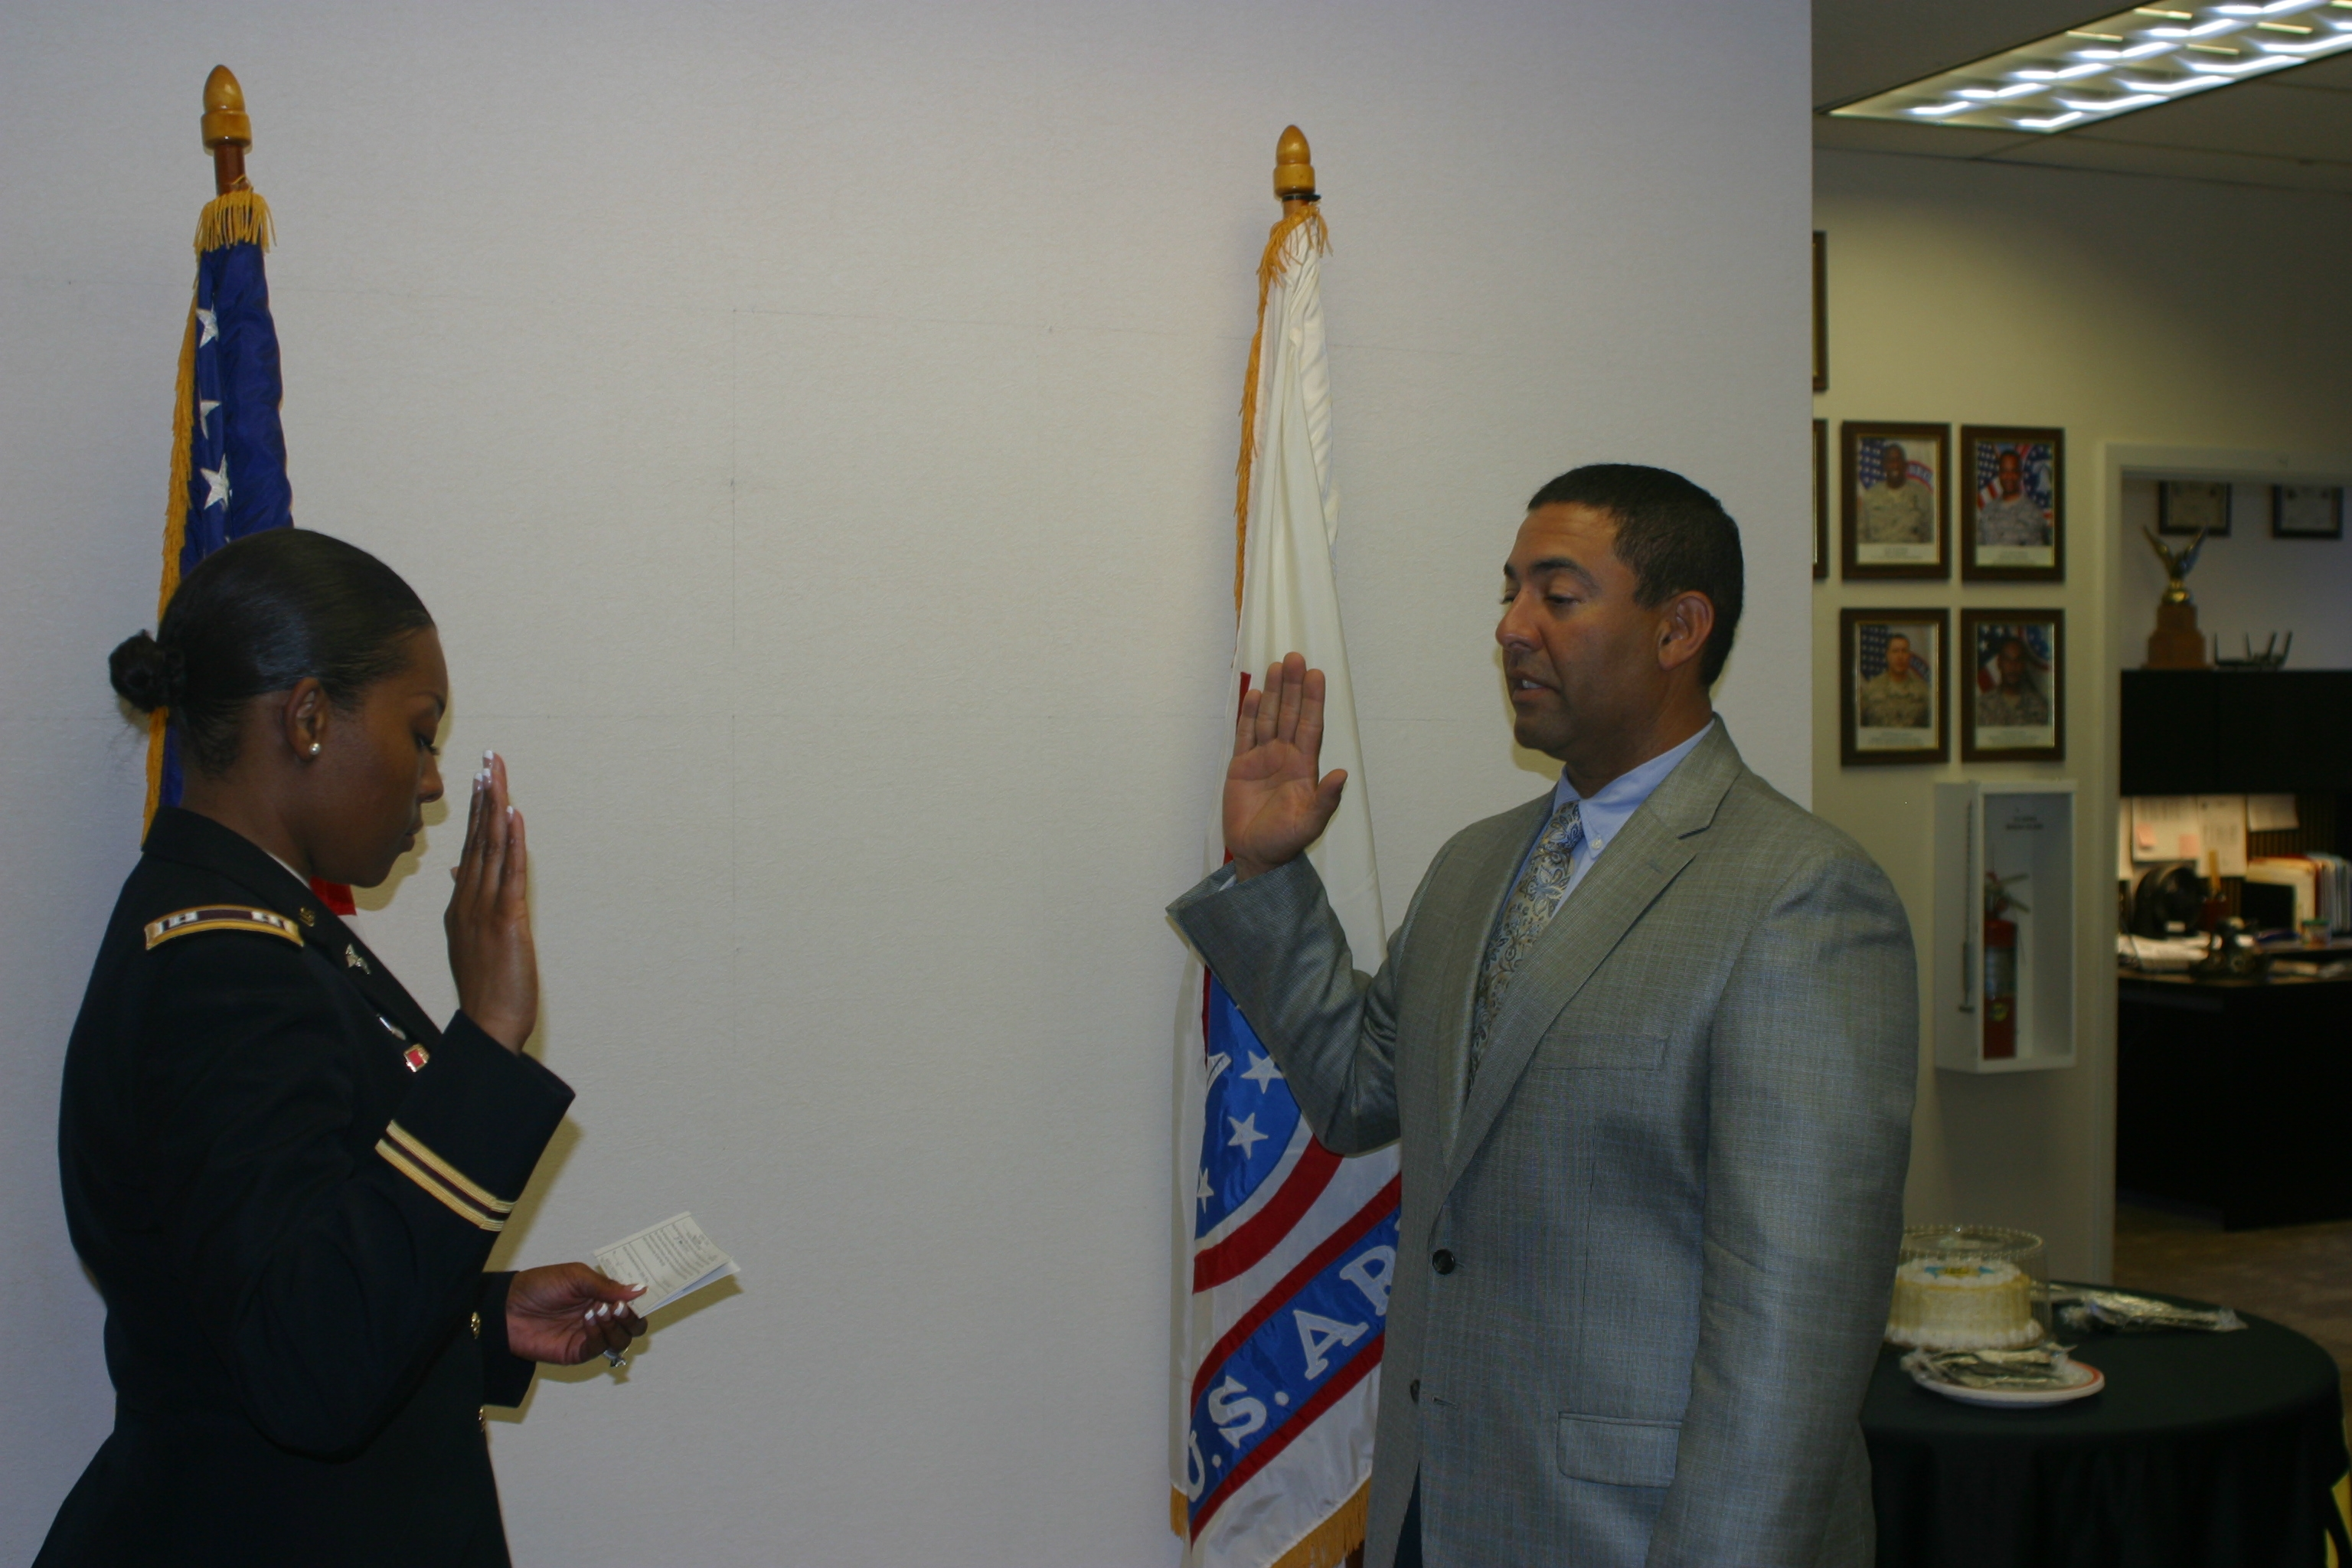 Dr. Jose Peralta being sworn in as Captain in the U.S. Army Reserves Medical Support Unit.